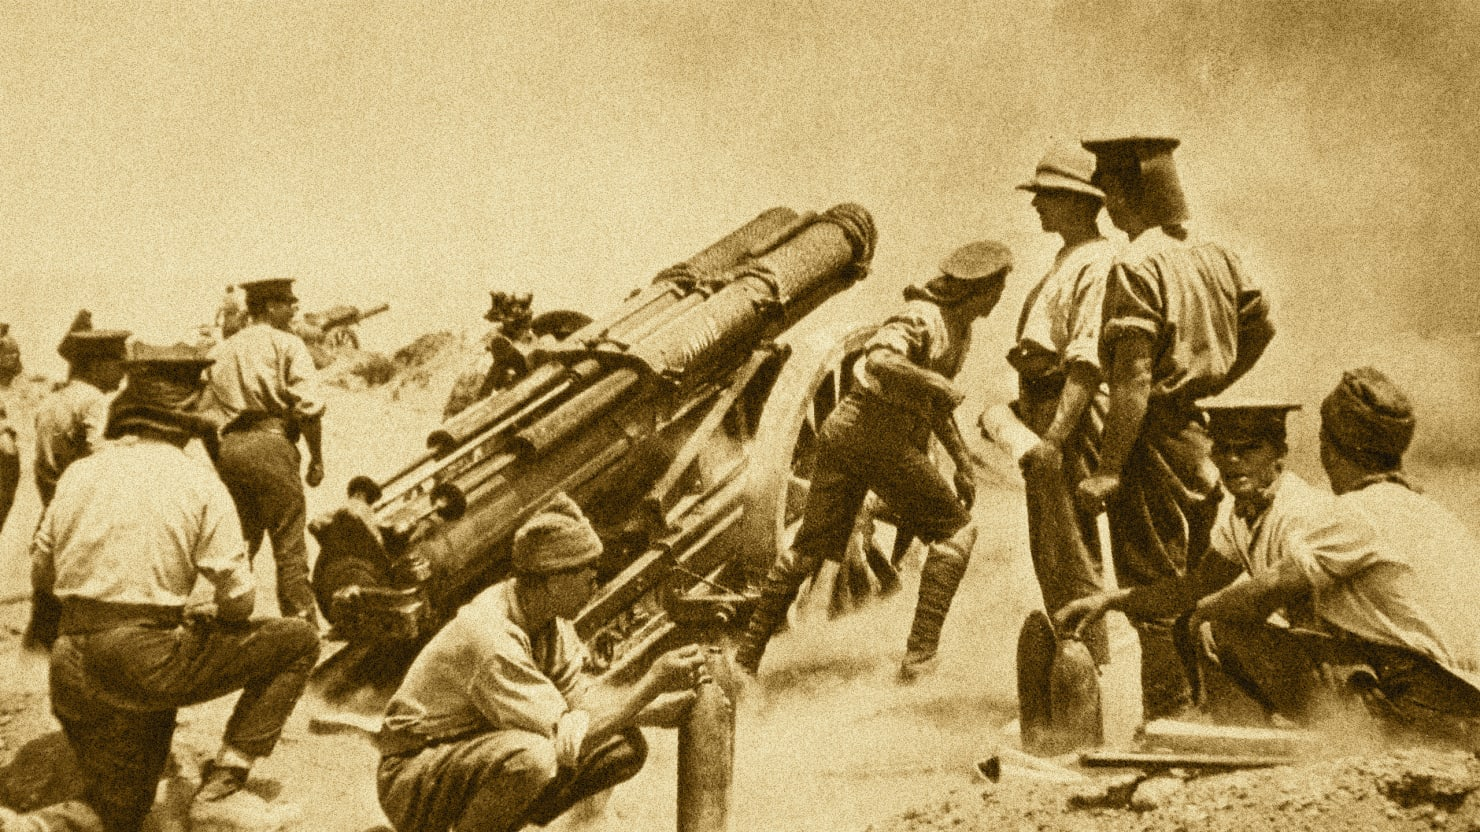 Gallipoli: WWI's Most Disastrous Battle